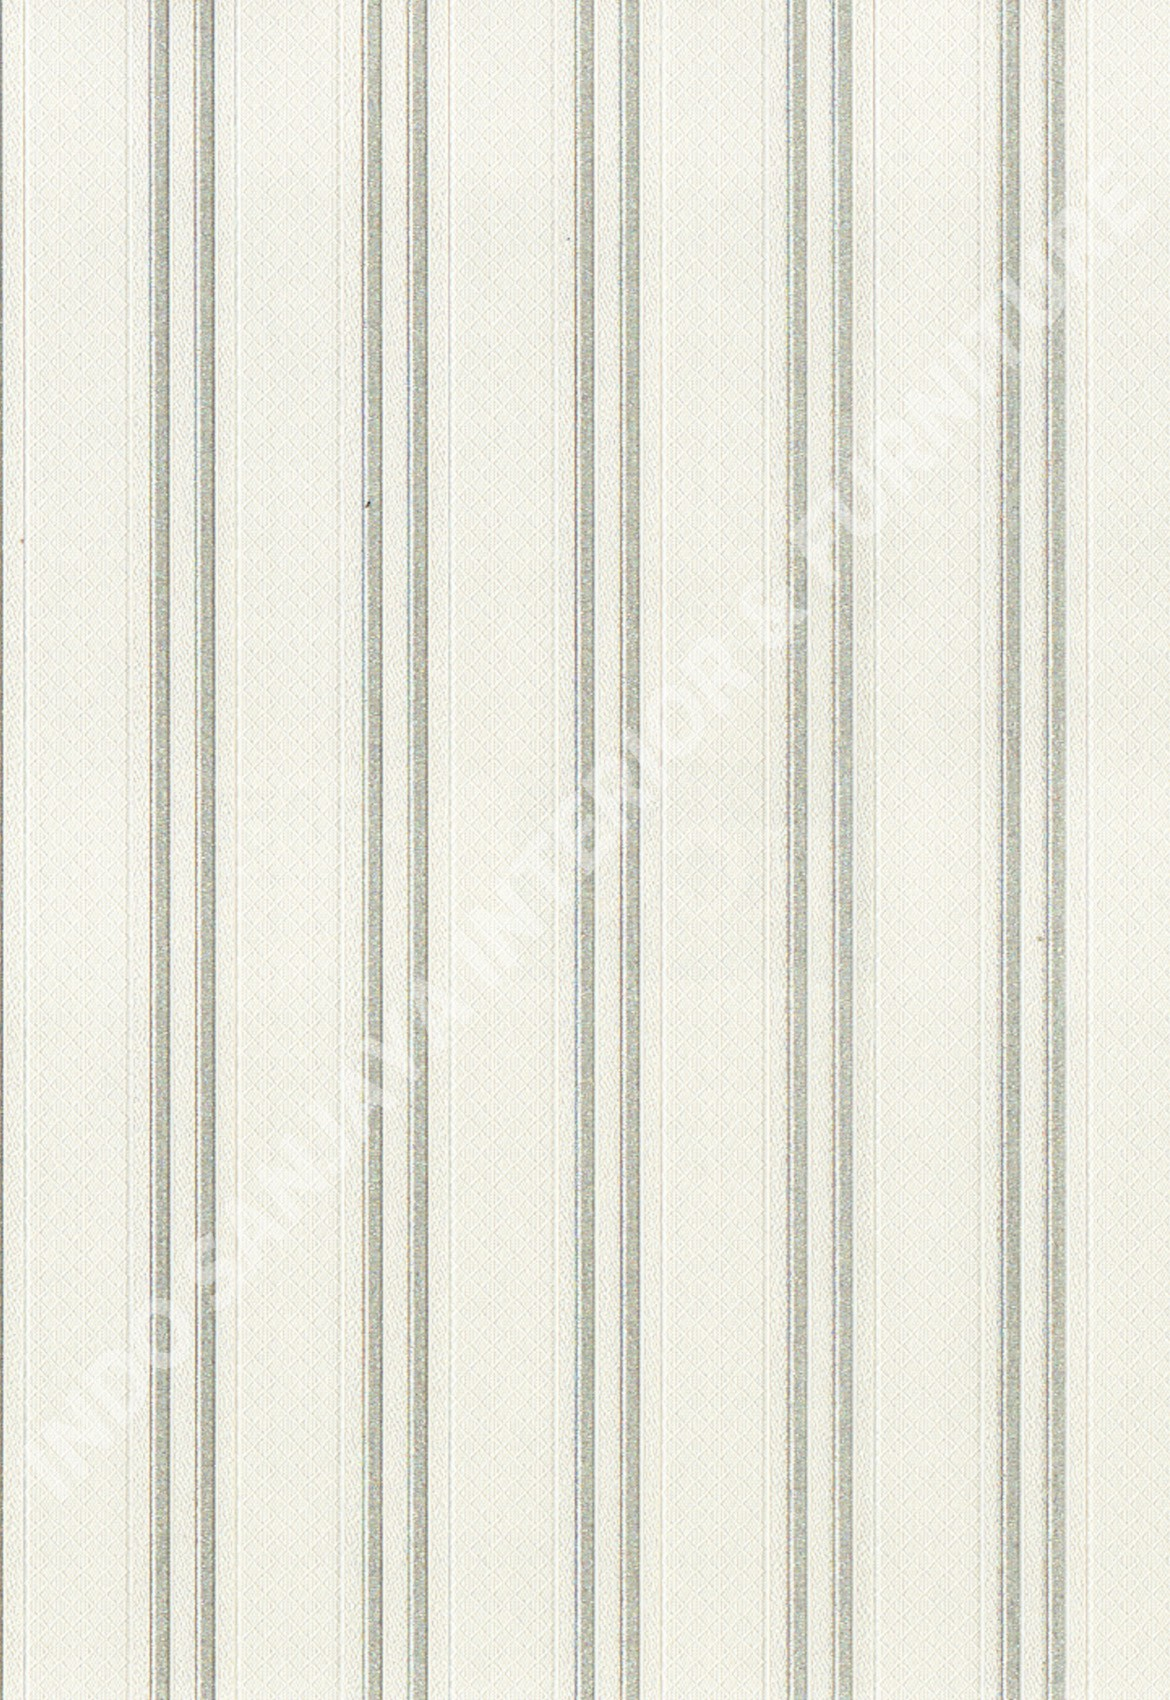 wallpaper   Wallpaper Garis E10501:E10501 corak  warna